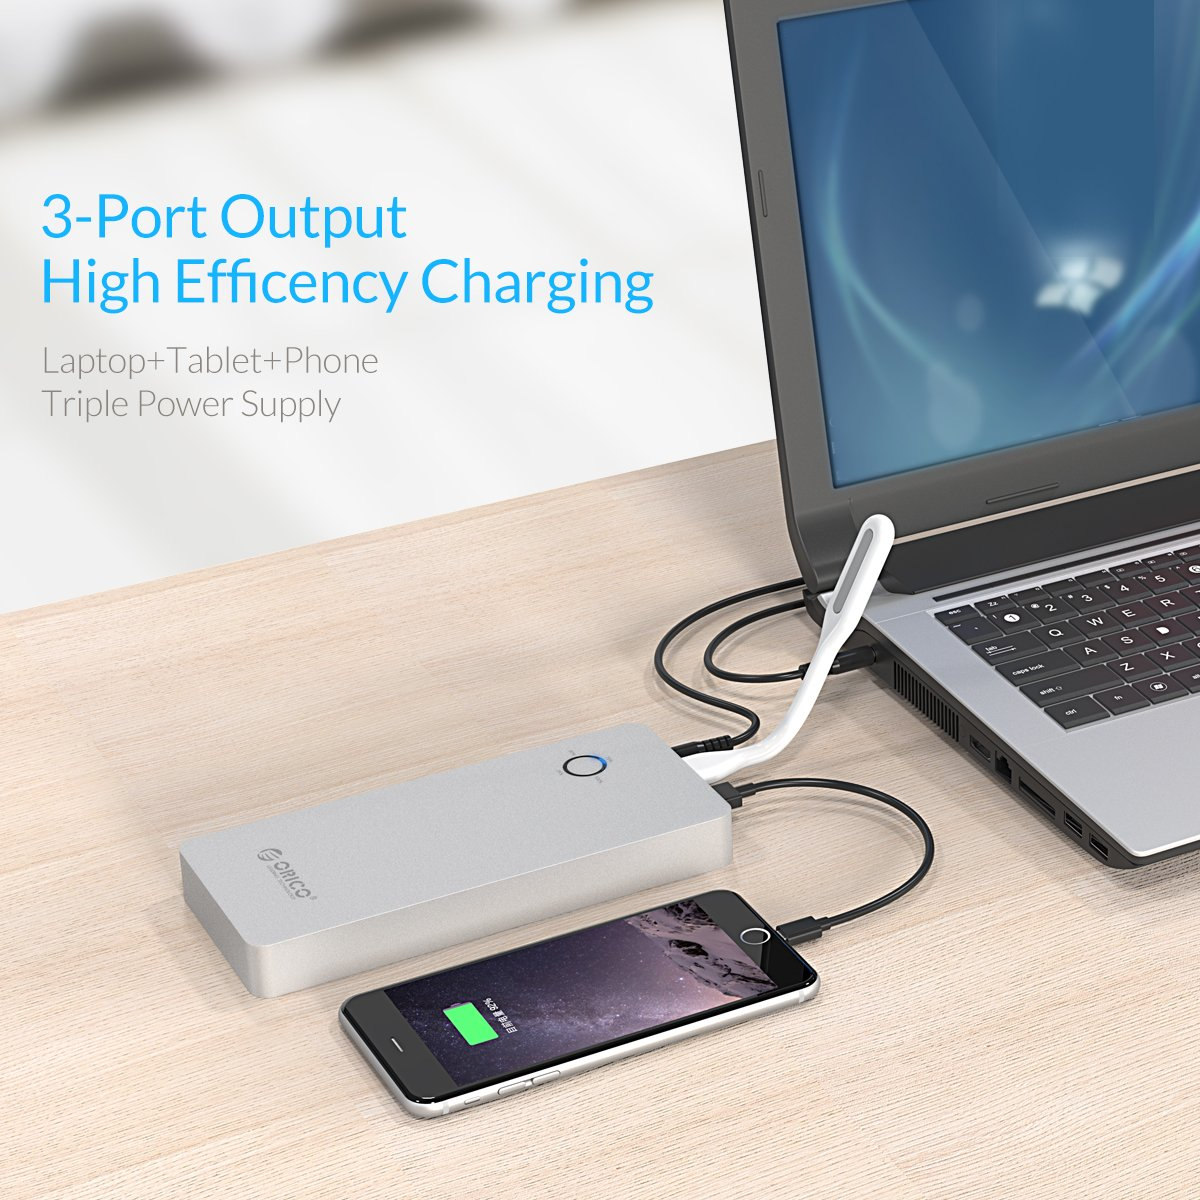 ORICO 18000mAh Aluminum Power Bank with DC input/output and 2 Quick Charge USB Ports - Perfect for PC, Laptop, Phone, Kindle, Tablets & More by ORICO (Image #7)